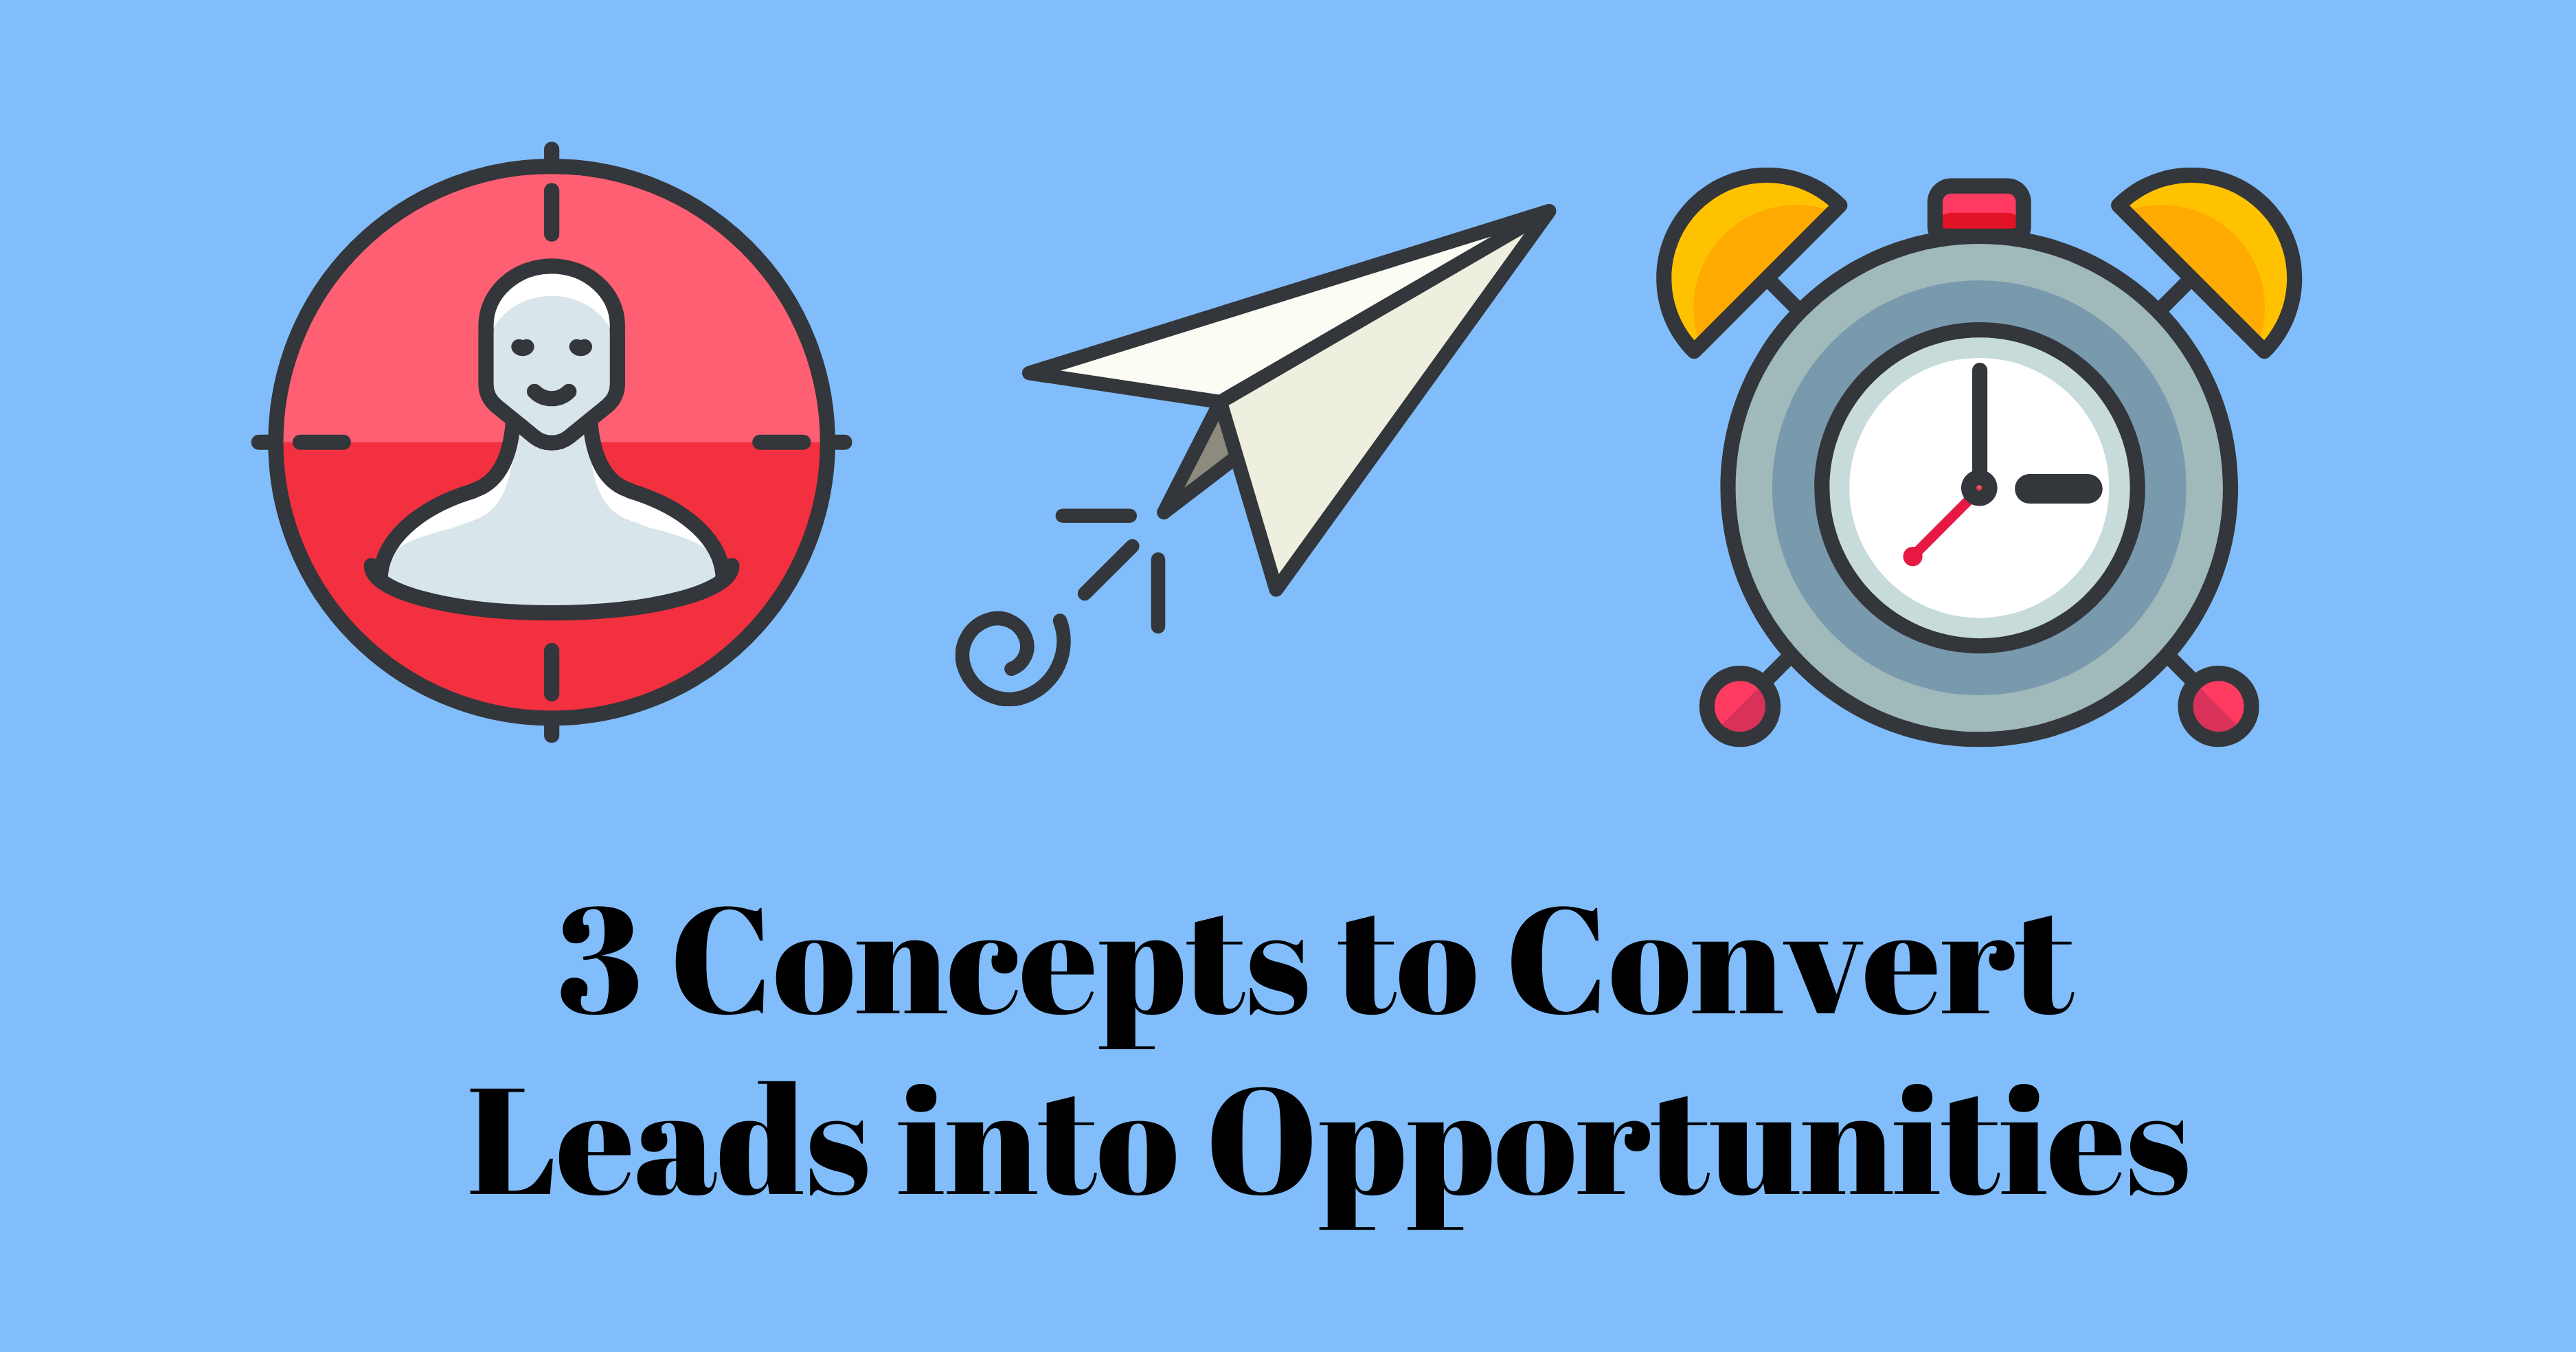 3 Concepts to Convert Leads into Opportunities